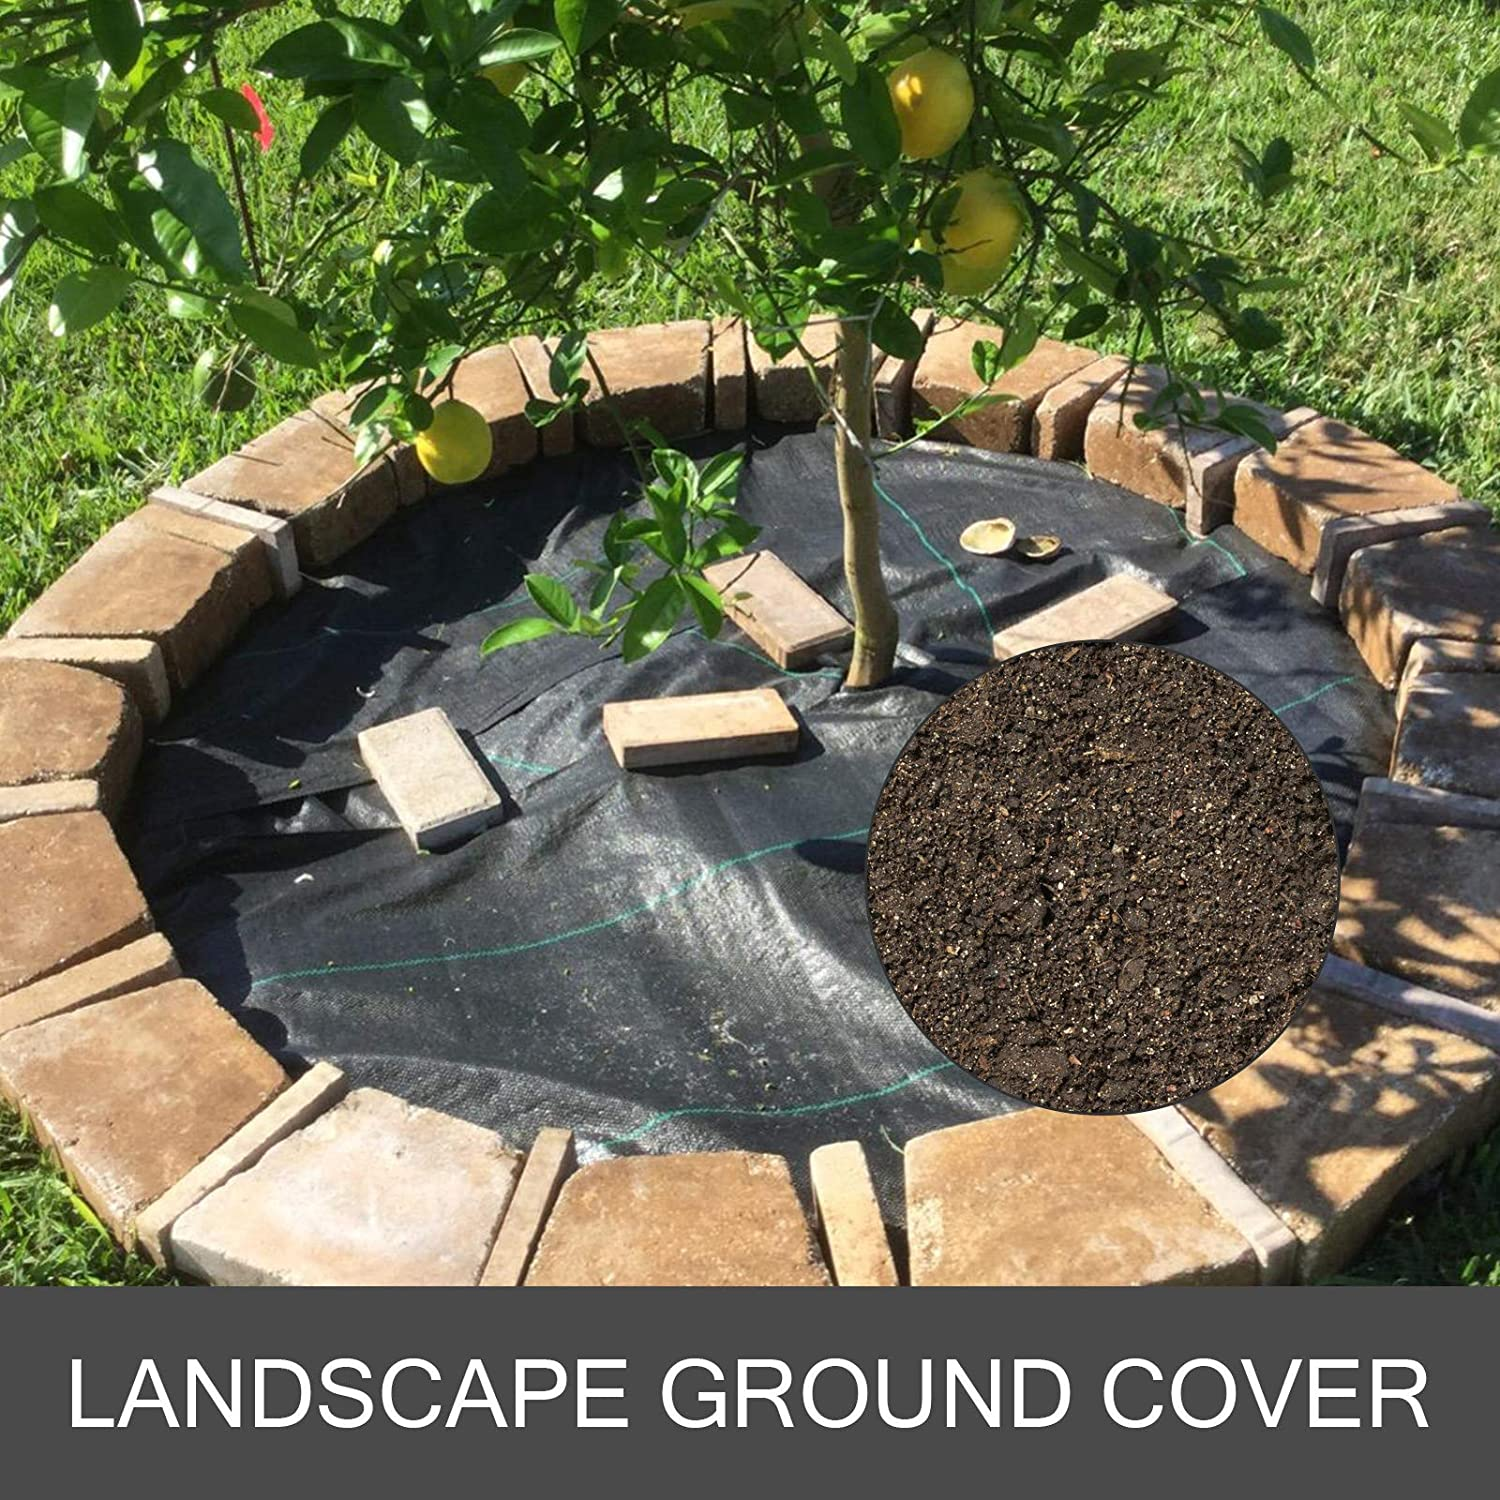 Happybuy Landscape Fabric 6.5ft x 330ft 3.2oz Garden Weed Barrier Heavy Duty Polypropylene Black Ground Cover Weed Barrier for Soil Erosion Control Weed Reduce